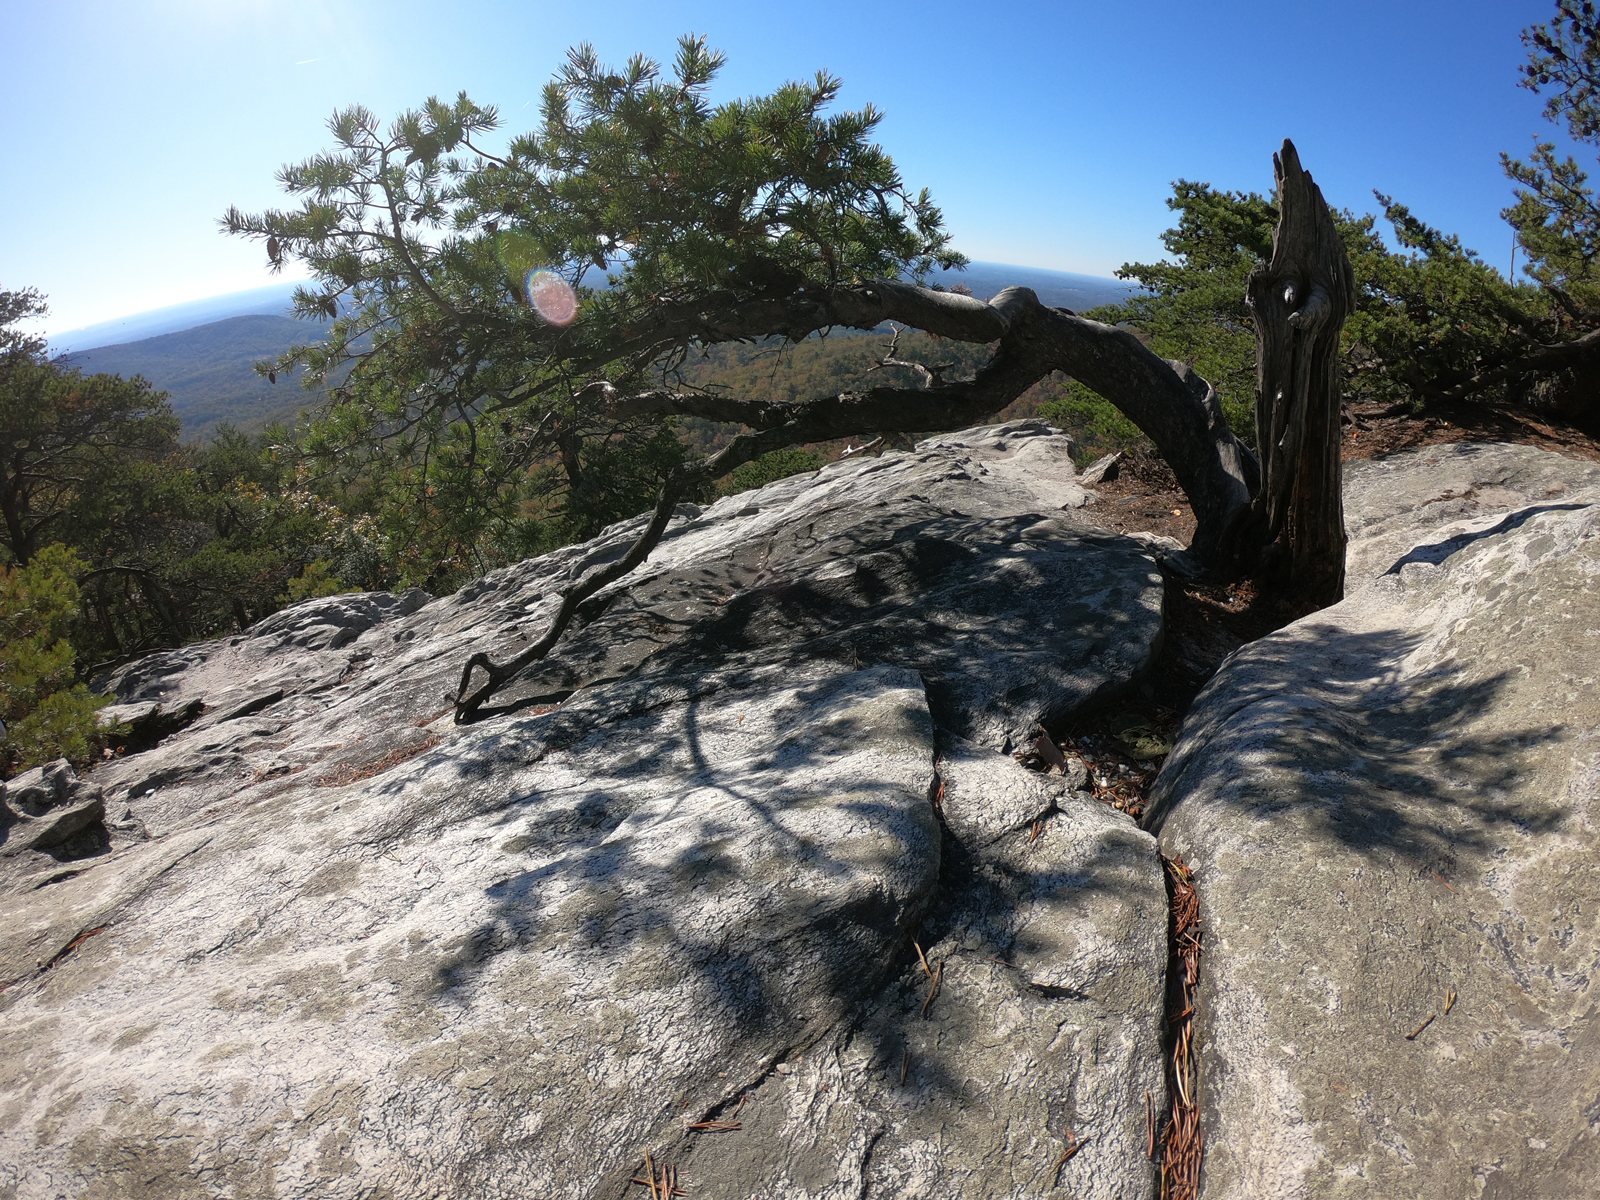 Bent old tree on top of Hanging Rock overlook in Hanging Rock State Park, North Carolina